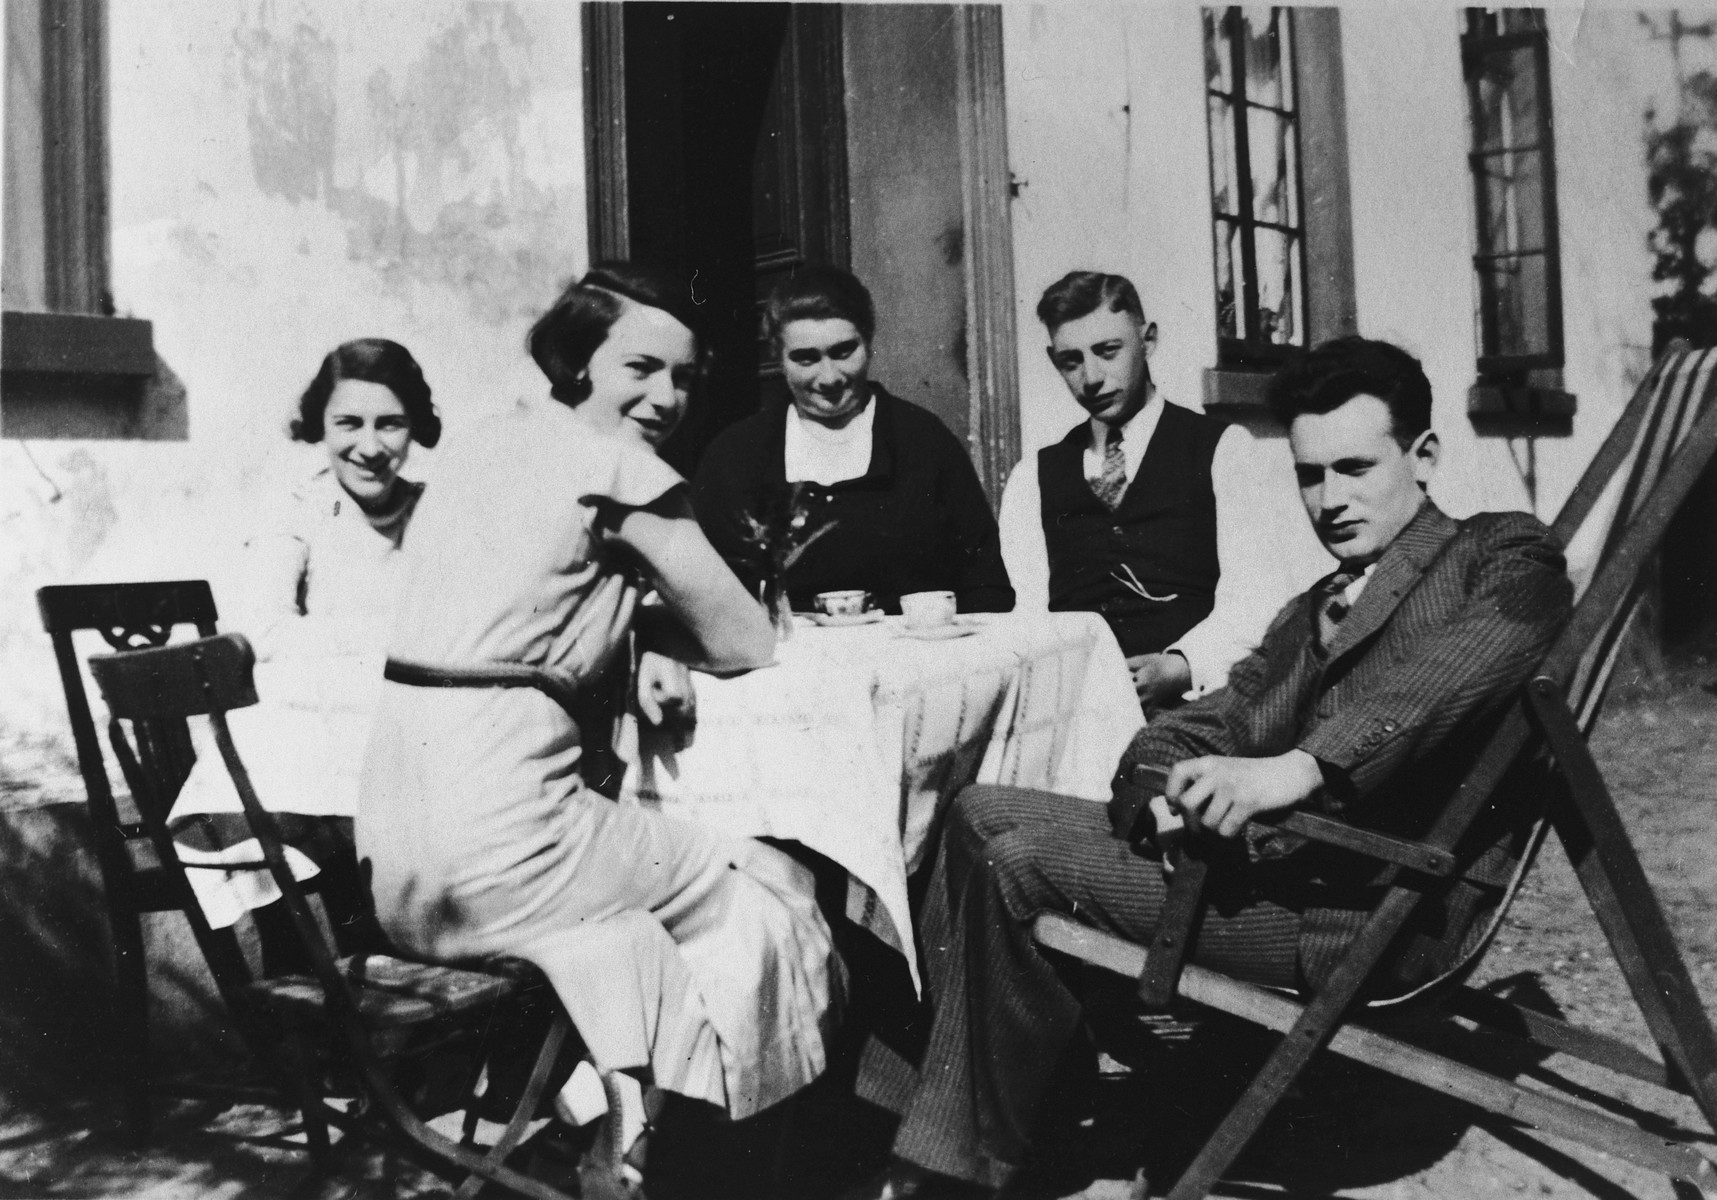 A German-Jewish family enjoys a cup of coffee in a courtyard in Aurich.  Pictured from left to right are Herta Goldschmidt, Emmi Samson, Mrs. Samson, Josef Samson and Herman Knurr.  Herta Goldschmidt left Germany for America in March 1939.  All of the Samson family perished.